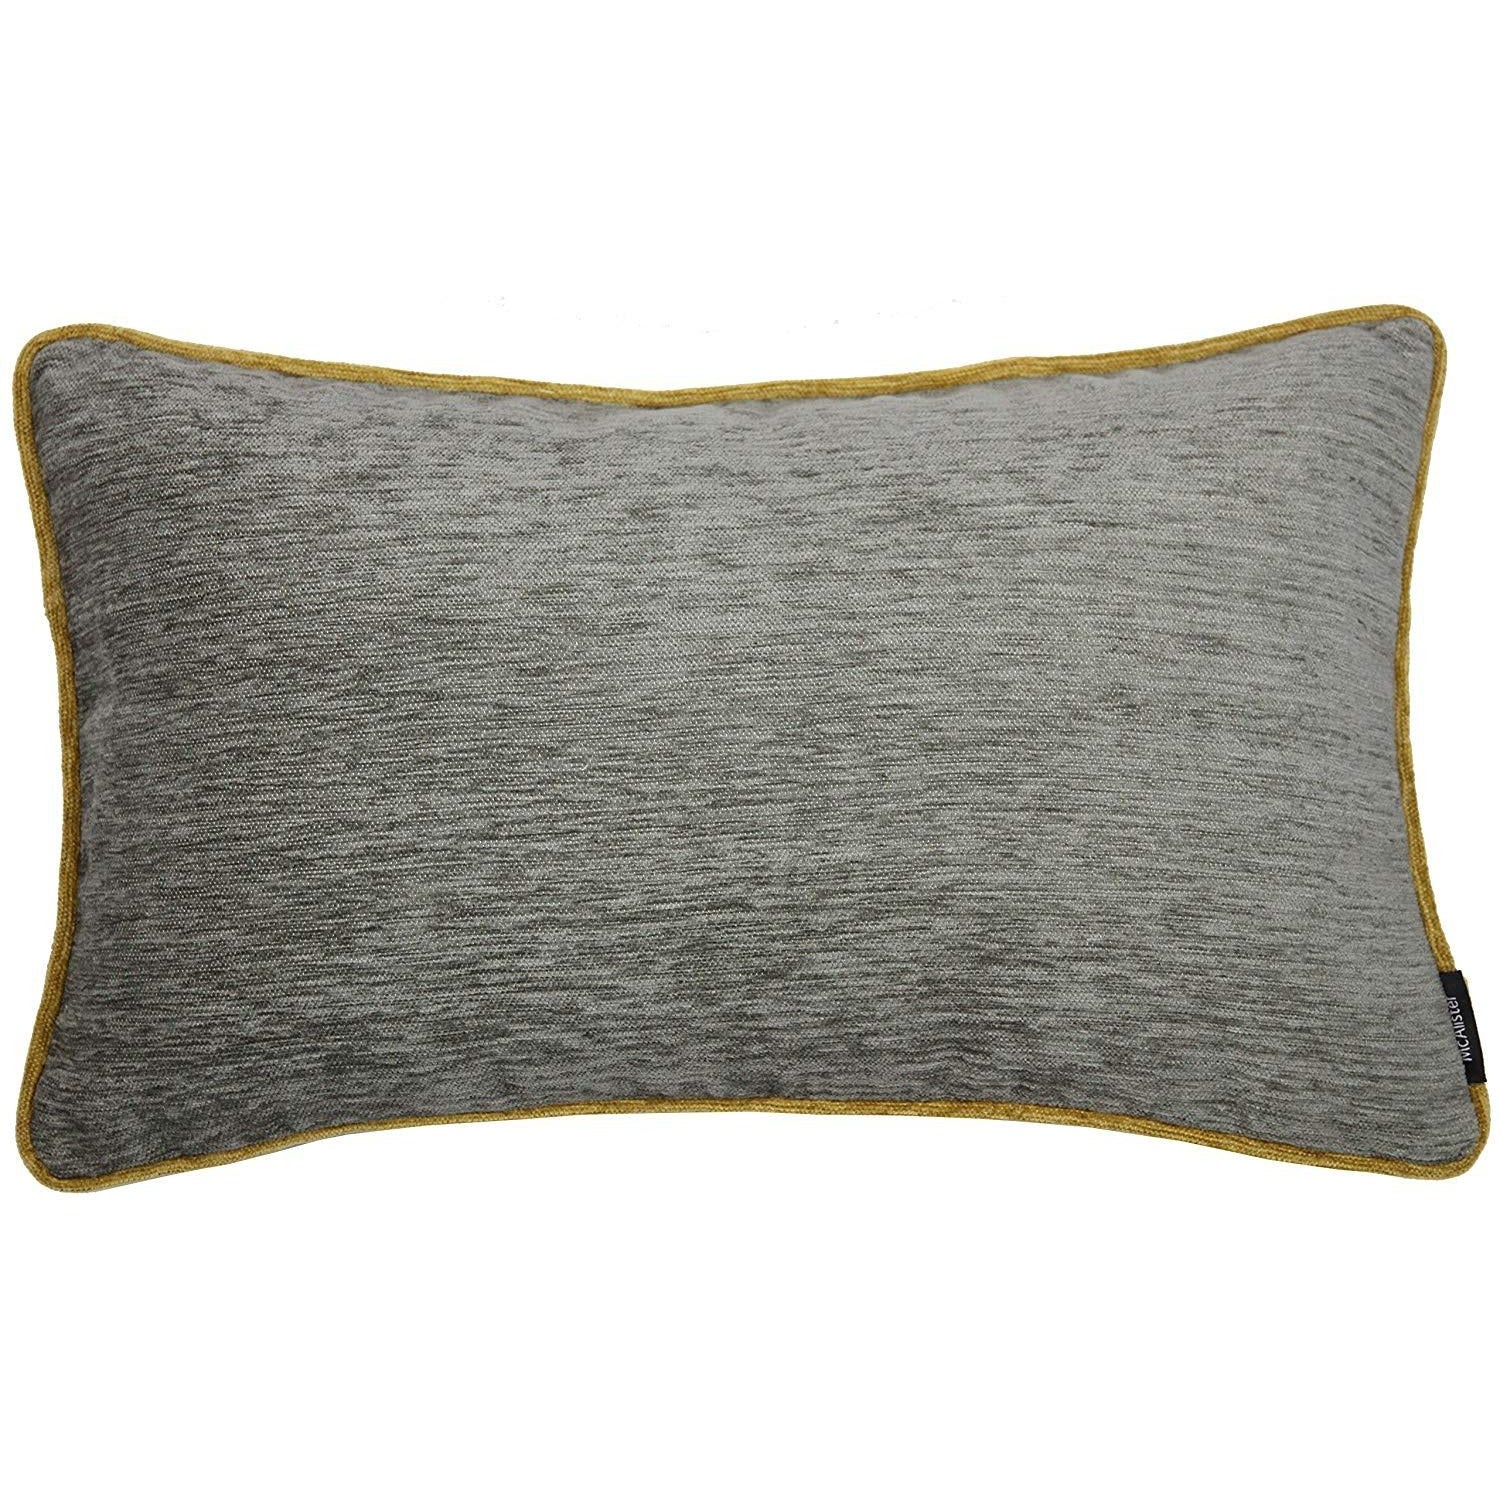 McAlister Textiles Alston Chenille Grey + Yellow Cushion Cushions and Covers Cover Only 50cm x 30cm